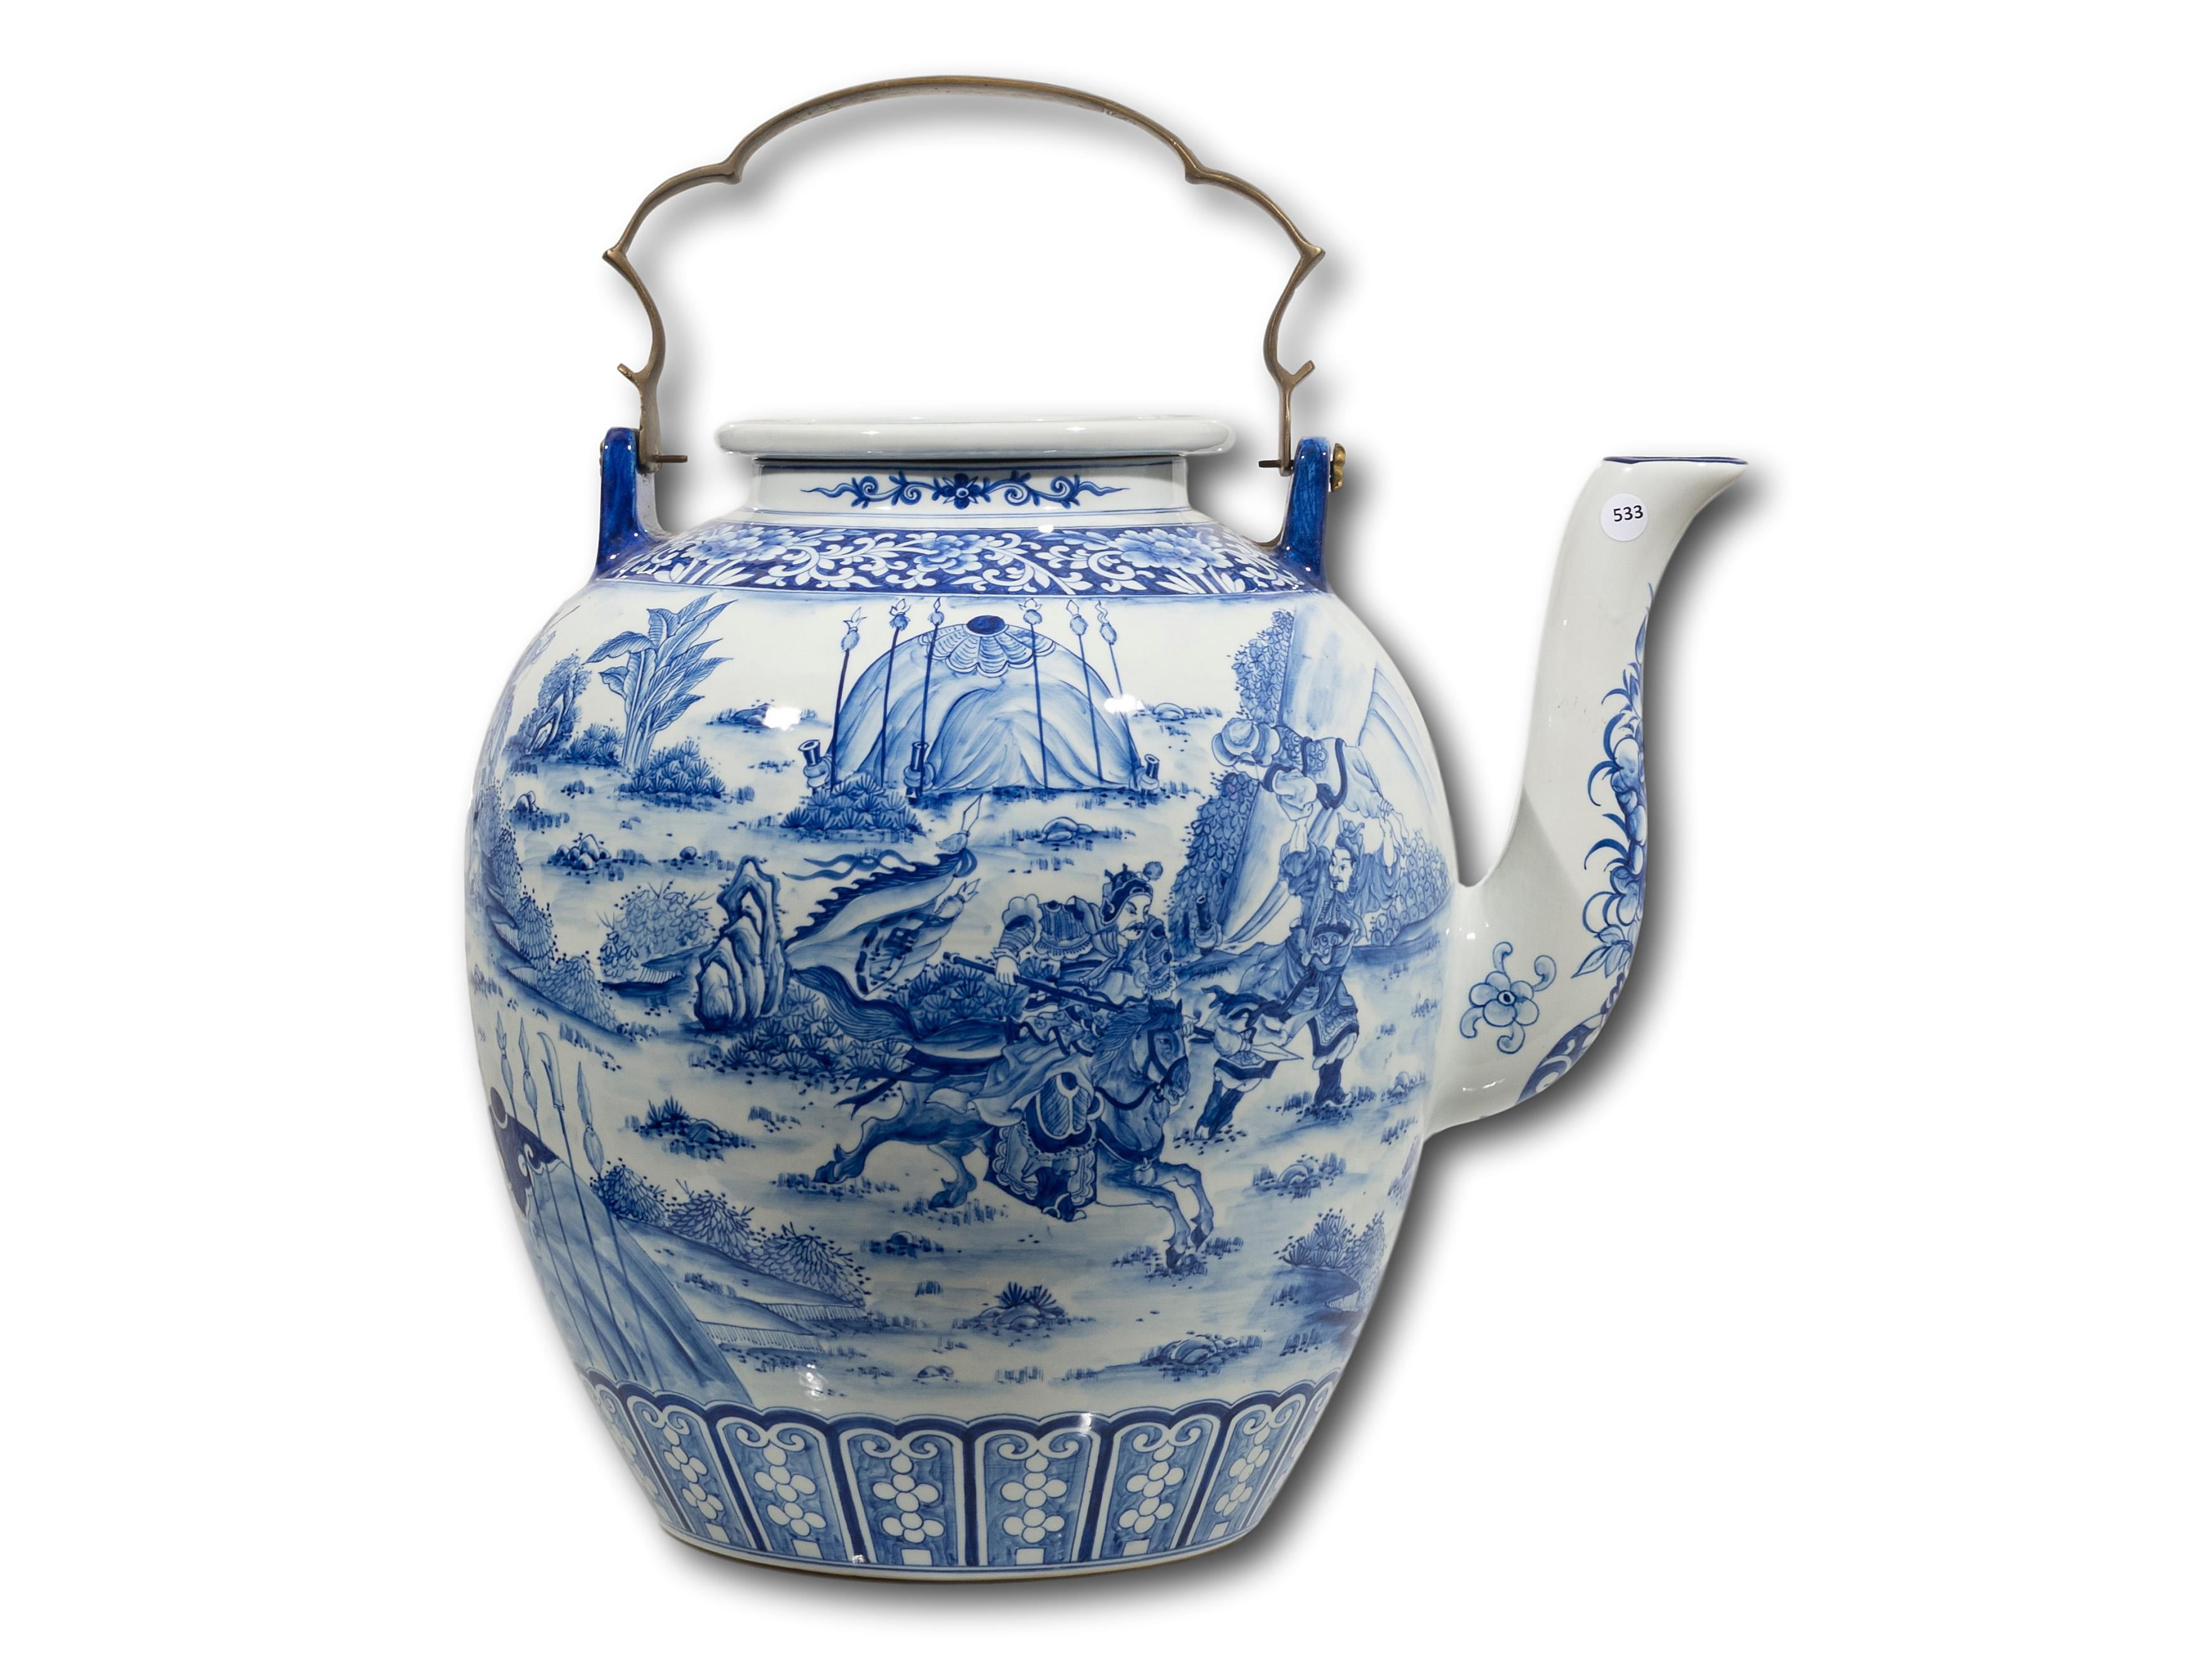 A Chinese Ornamental Ceramic Teapot with Brass Handle, 61cm